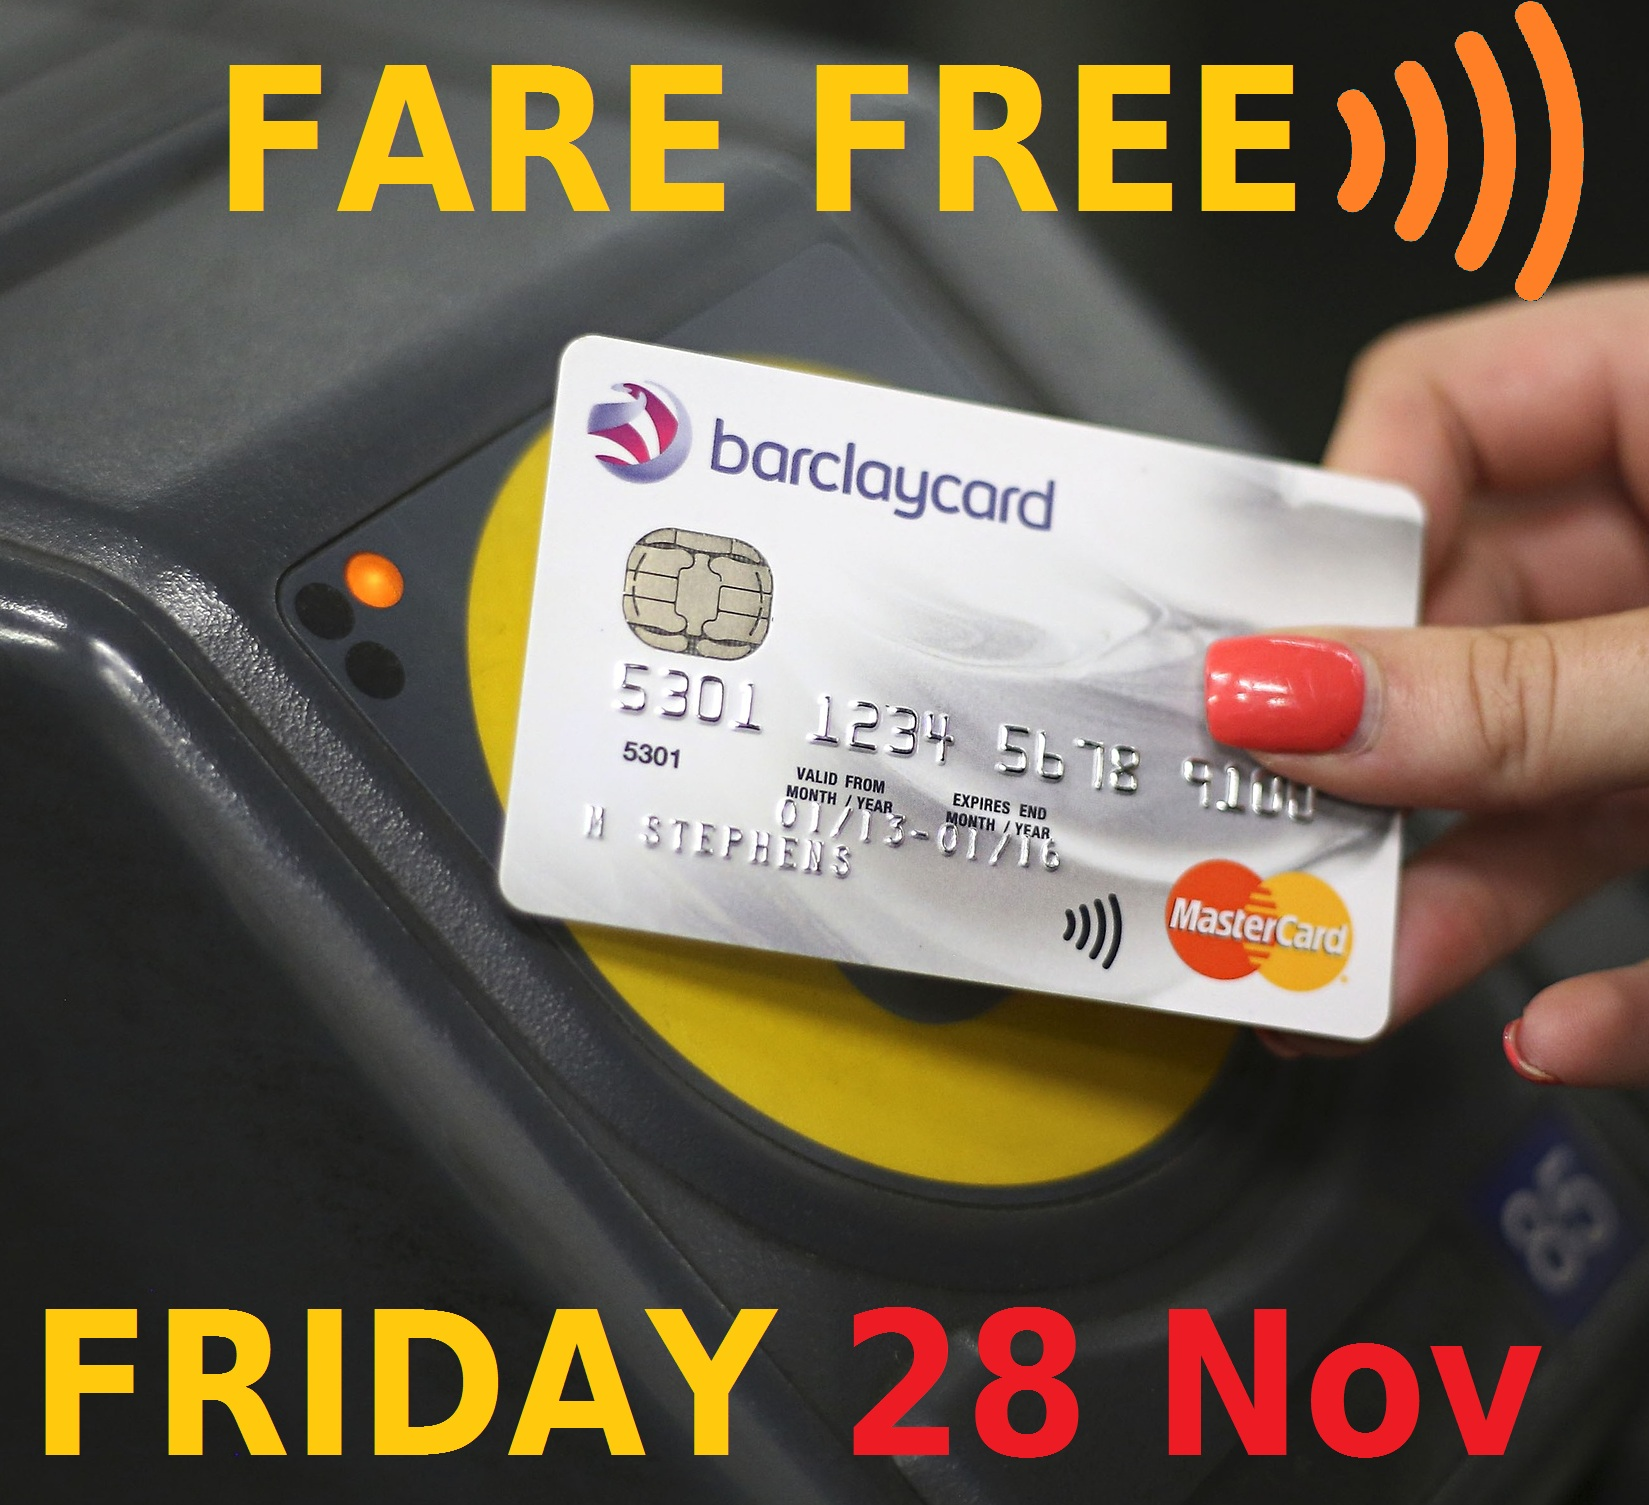 Fare free Friday